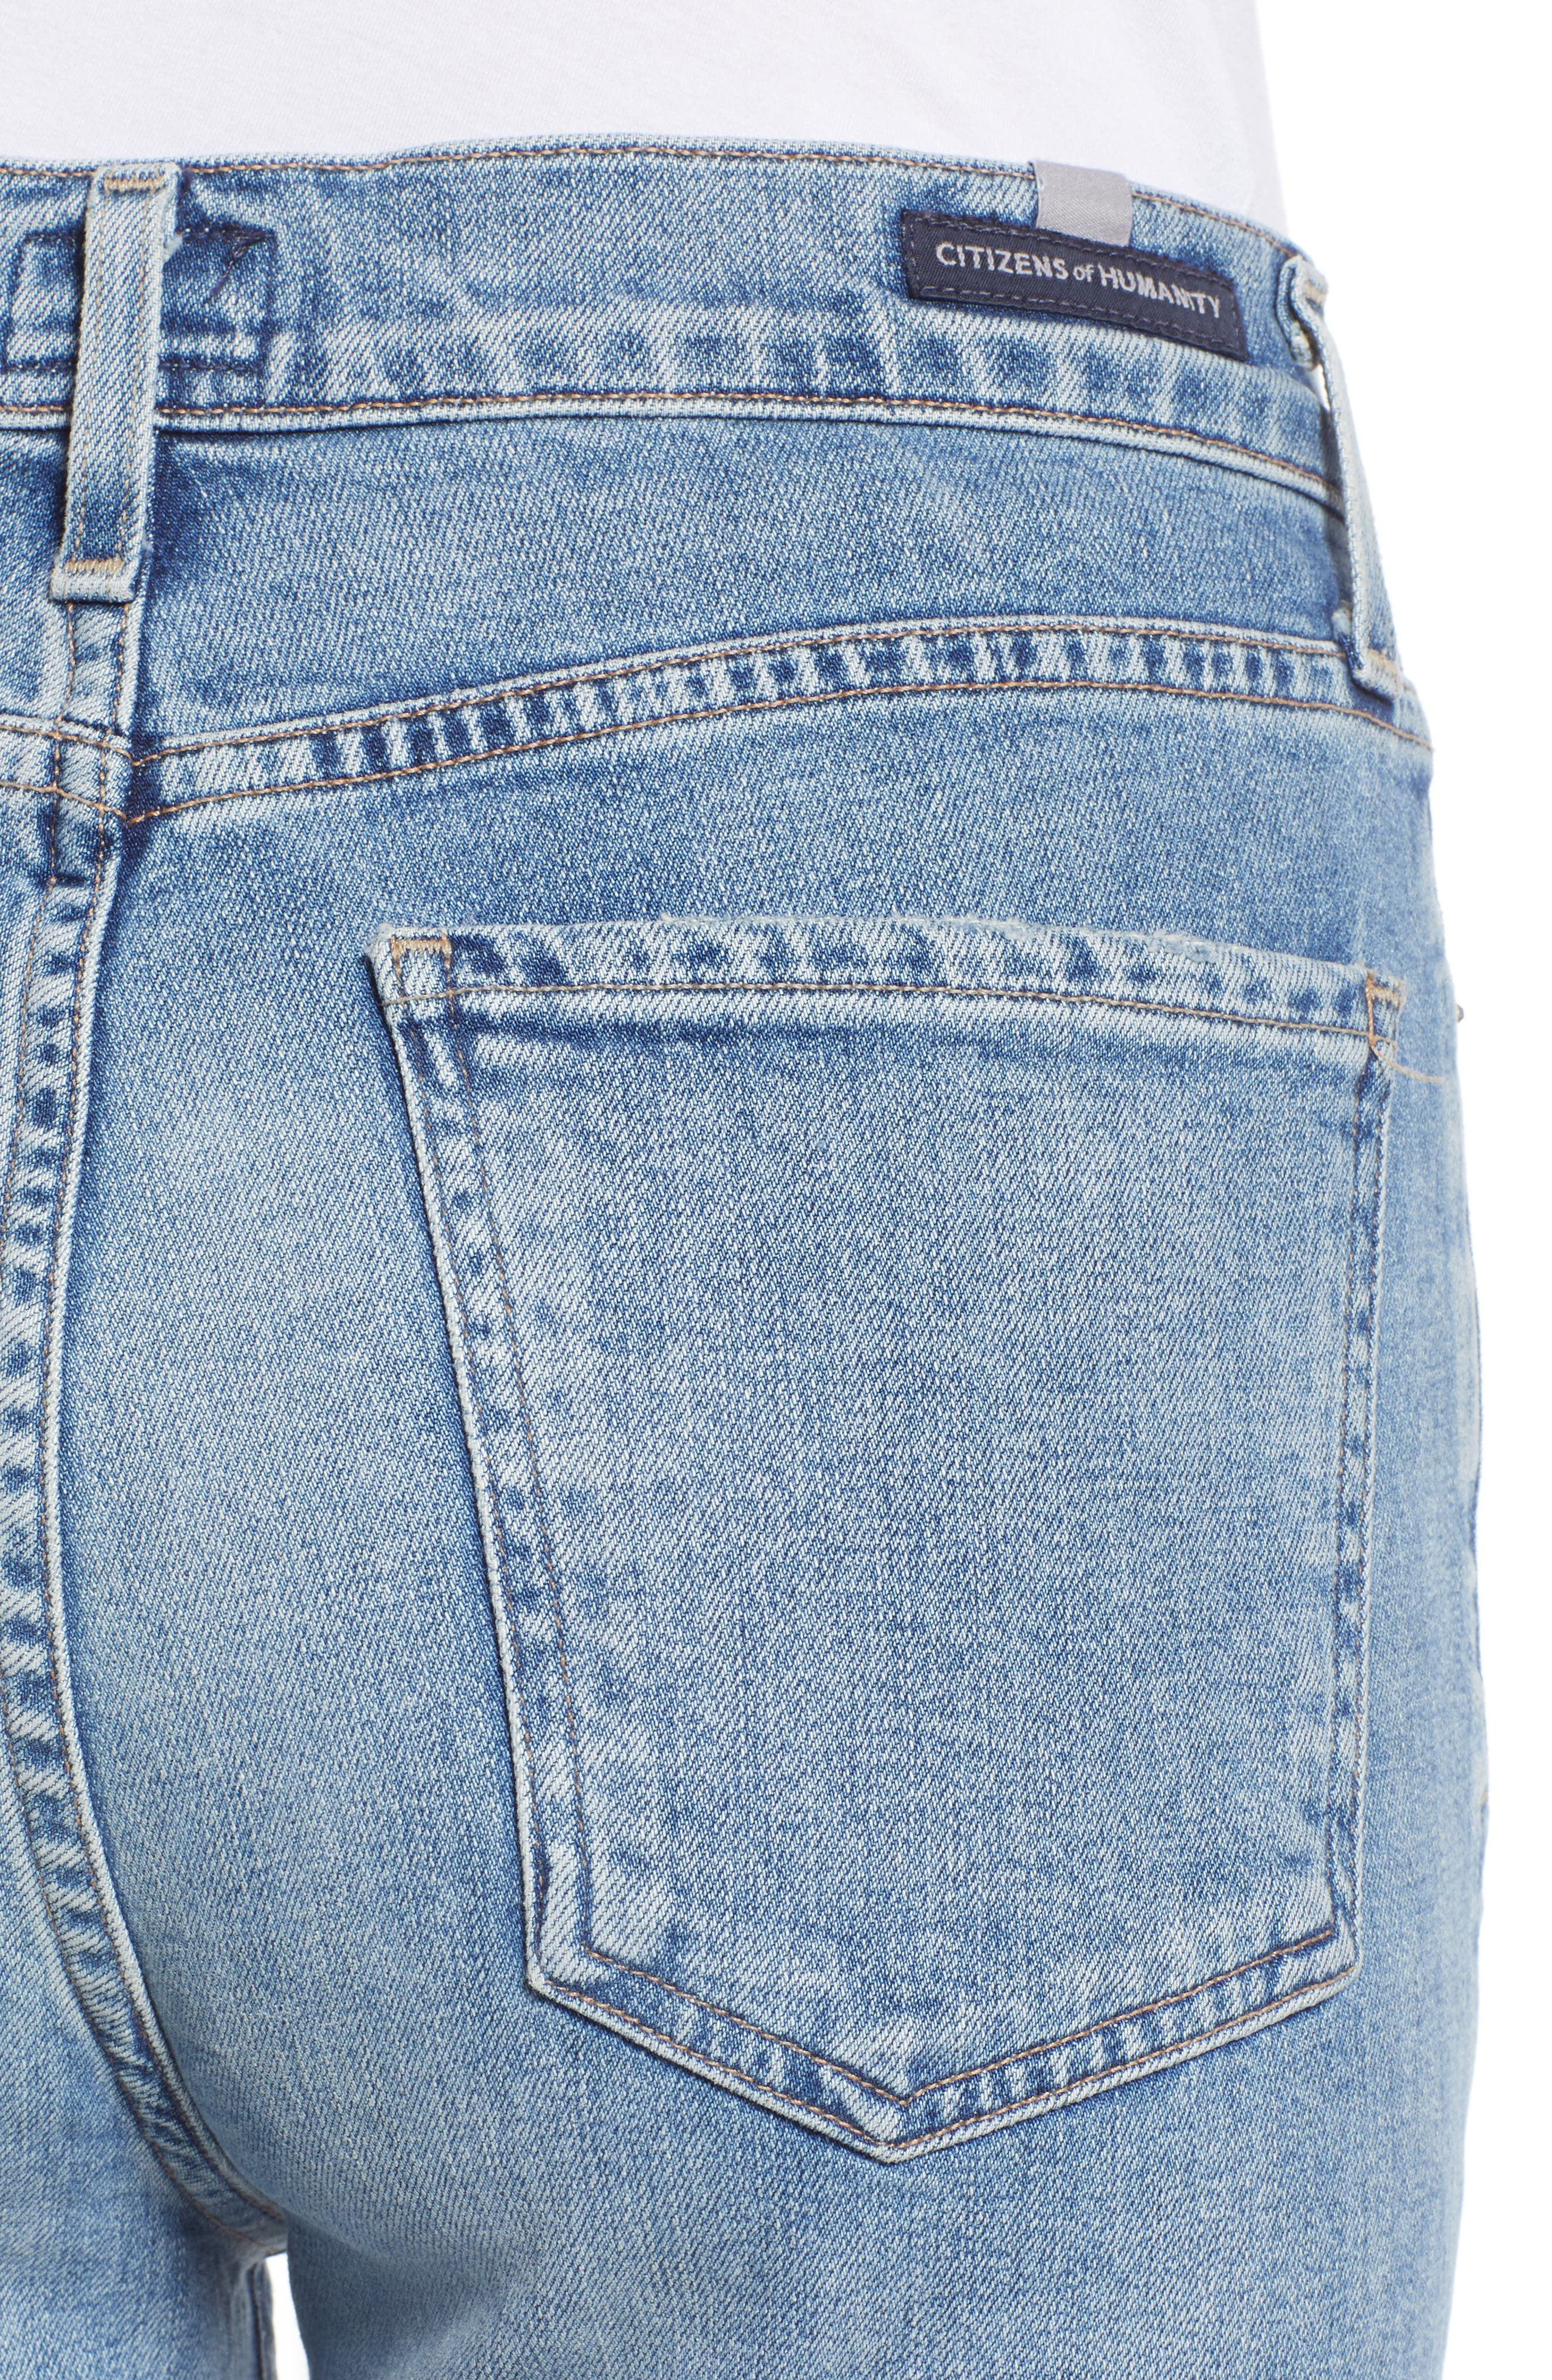 CITIZENS OF HUMANITY, Olivia High Waist Ankle Slim Jeans, Alternate thumbnail 5, color, BACK ROAD